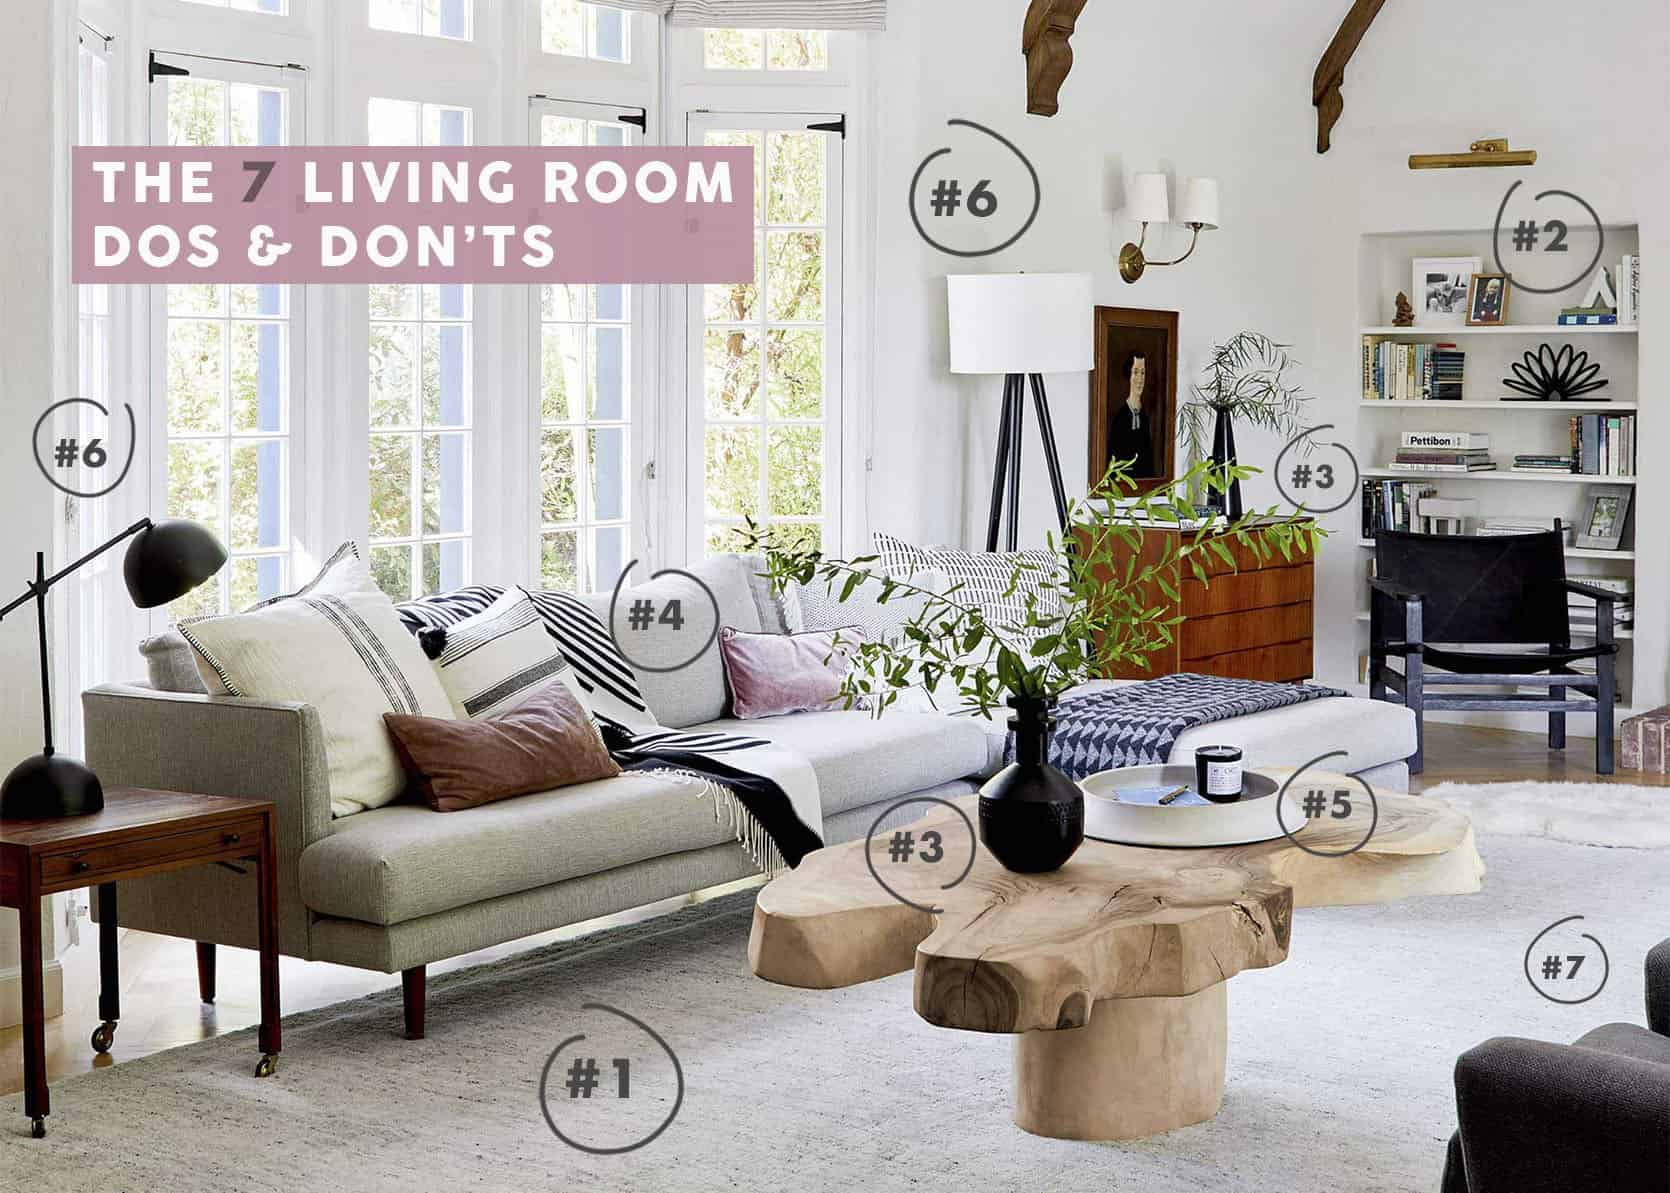 How To Make Your Living Room Look Better (The 7 Dos and Don'ts)